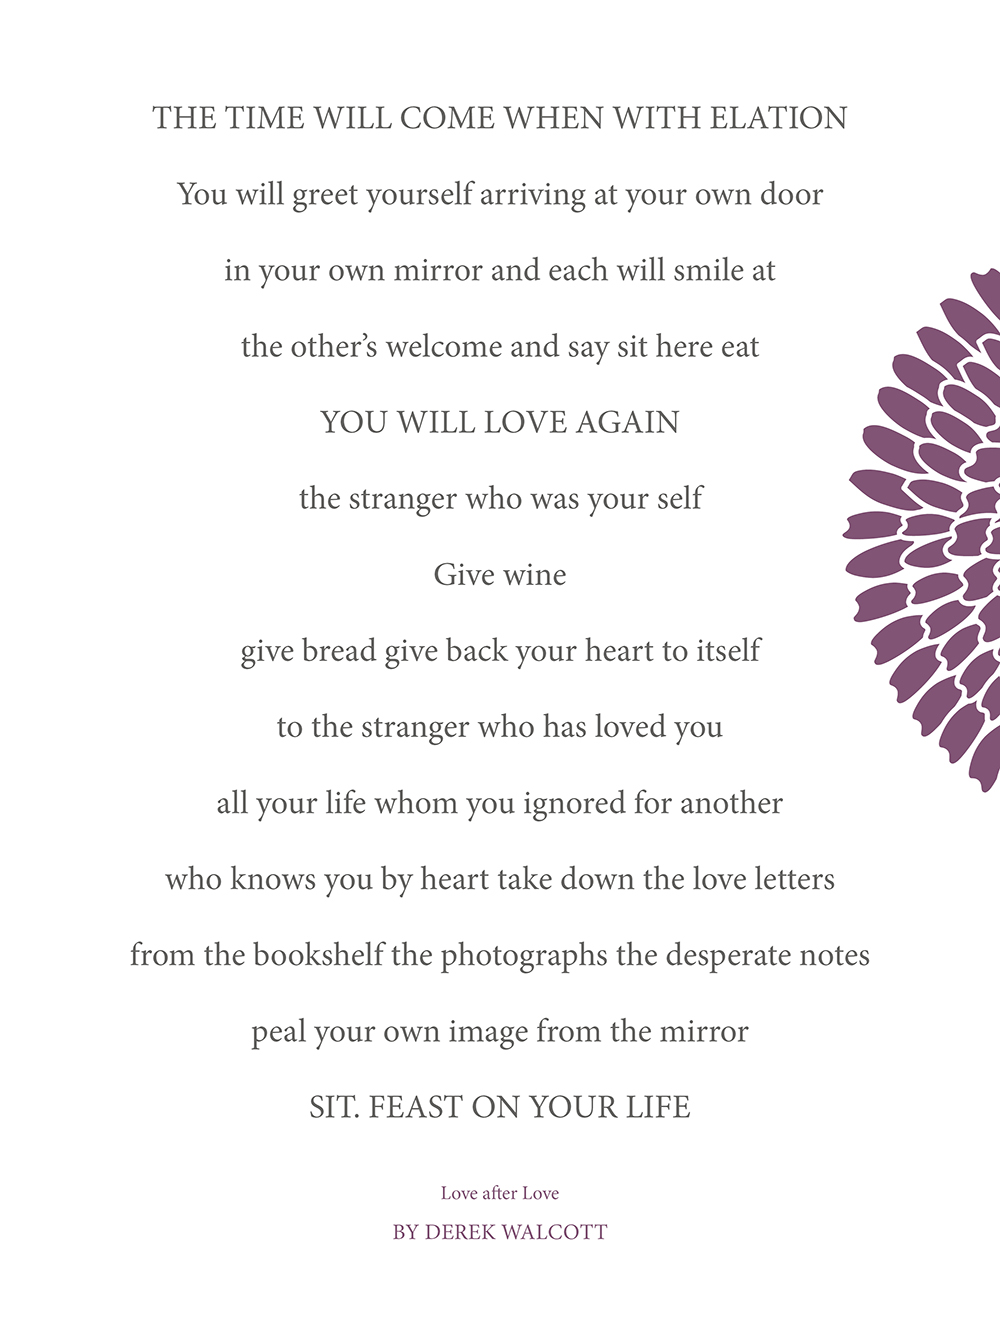 Greet Yourself and Feast on Your Life! — Christie Rachelle